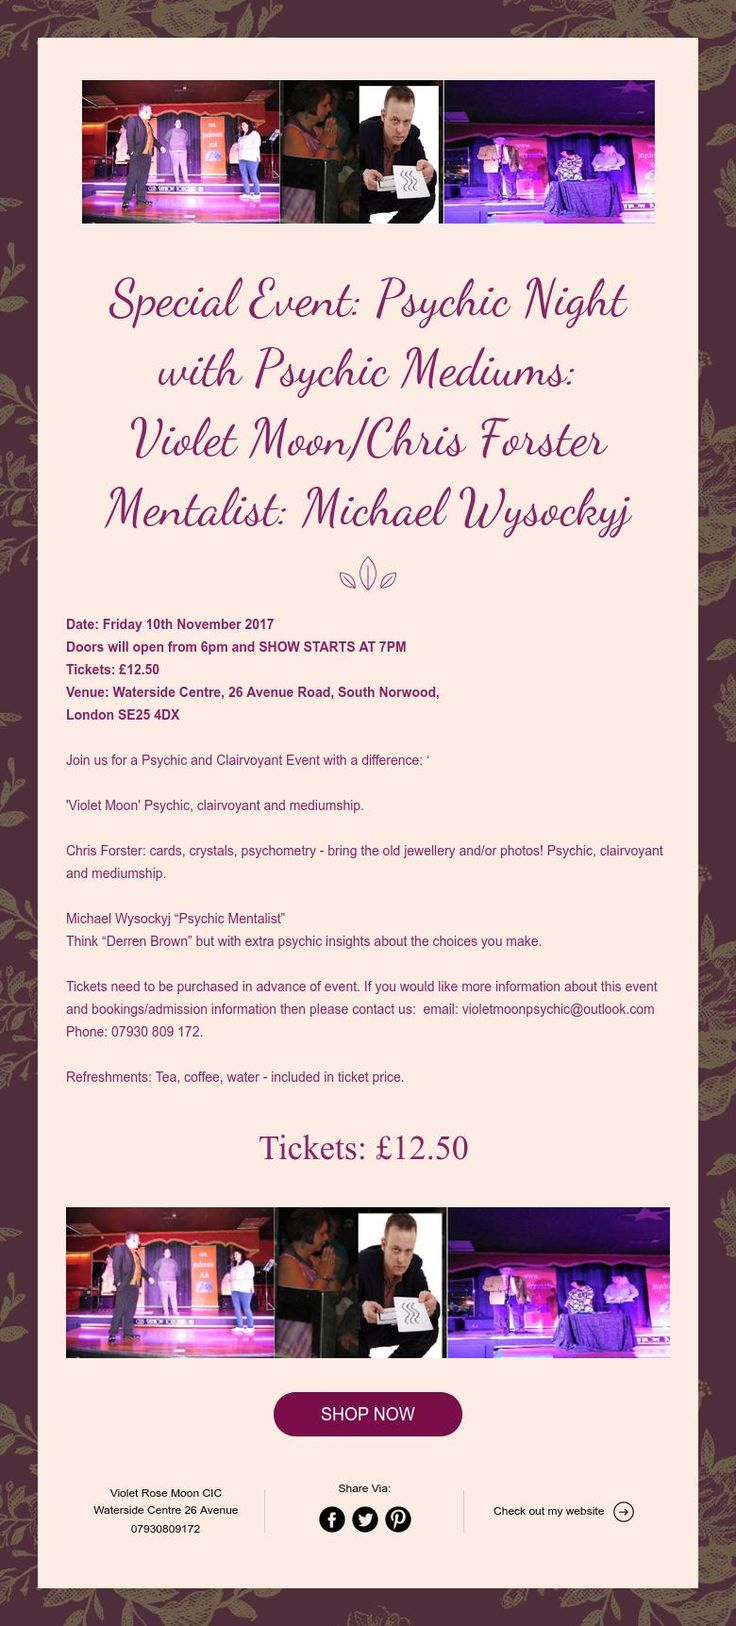 Special Event: Psychic Night   with Psychic Mediums:  Violet Moon/Chris Forster  Mentalist: Michael Wysockyj